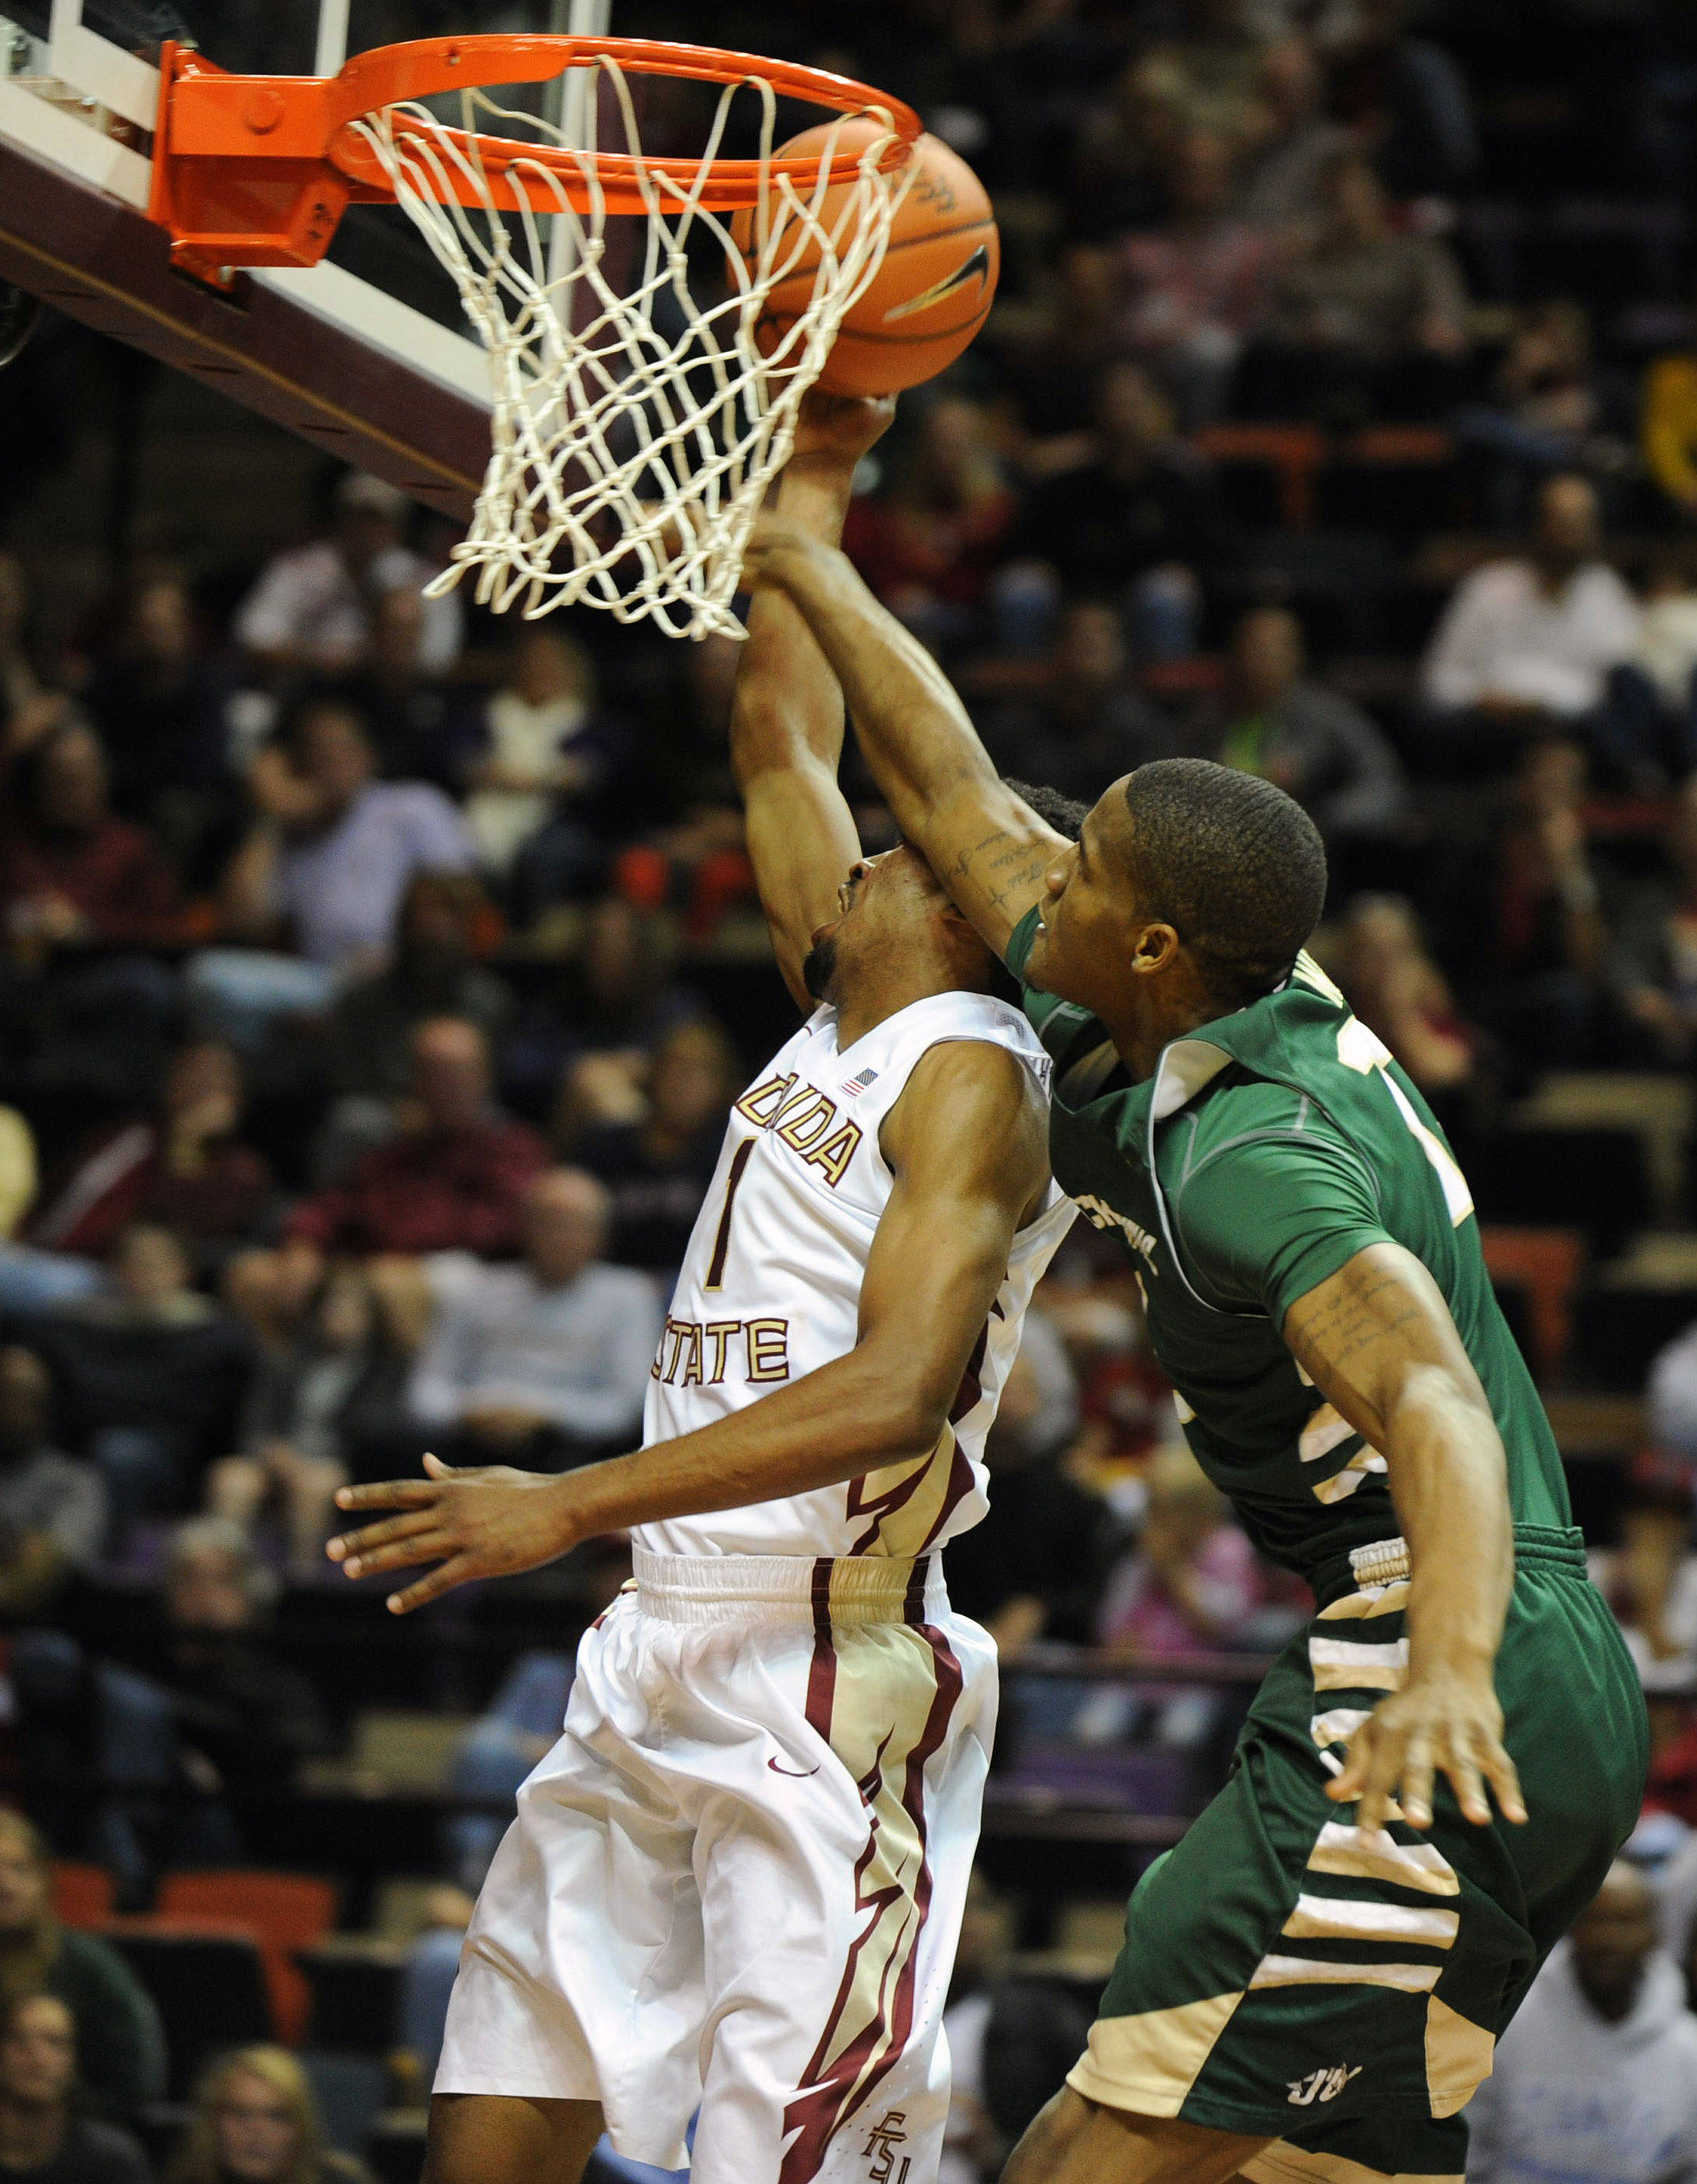 Nov 8, 2013; Tallahassee, FL, USA; Jacksonville Dolphins forward Marcel White (13) fouls Florida State Seminoles guard Devon Bookert (1) as he goes up for a shot during the first half at the Donald L. Tucker Center. Mandatory Credit: Melina Vastola-USA TODAY Sports